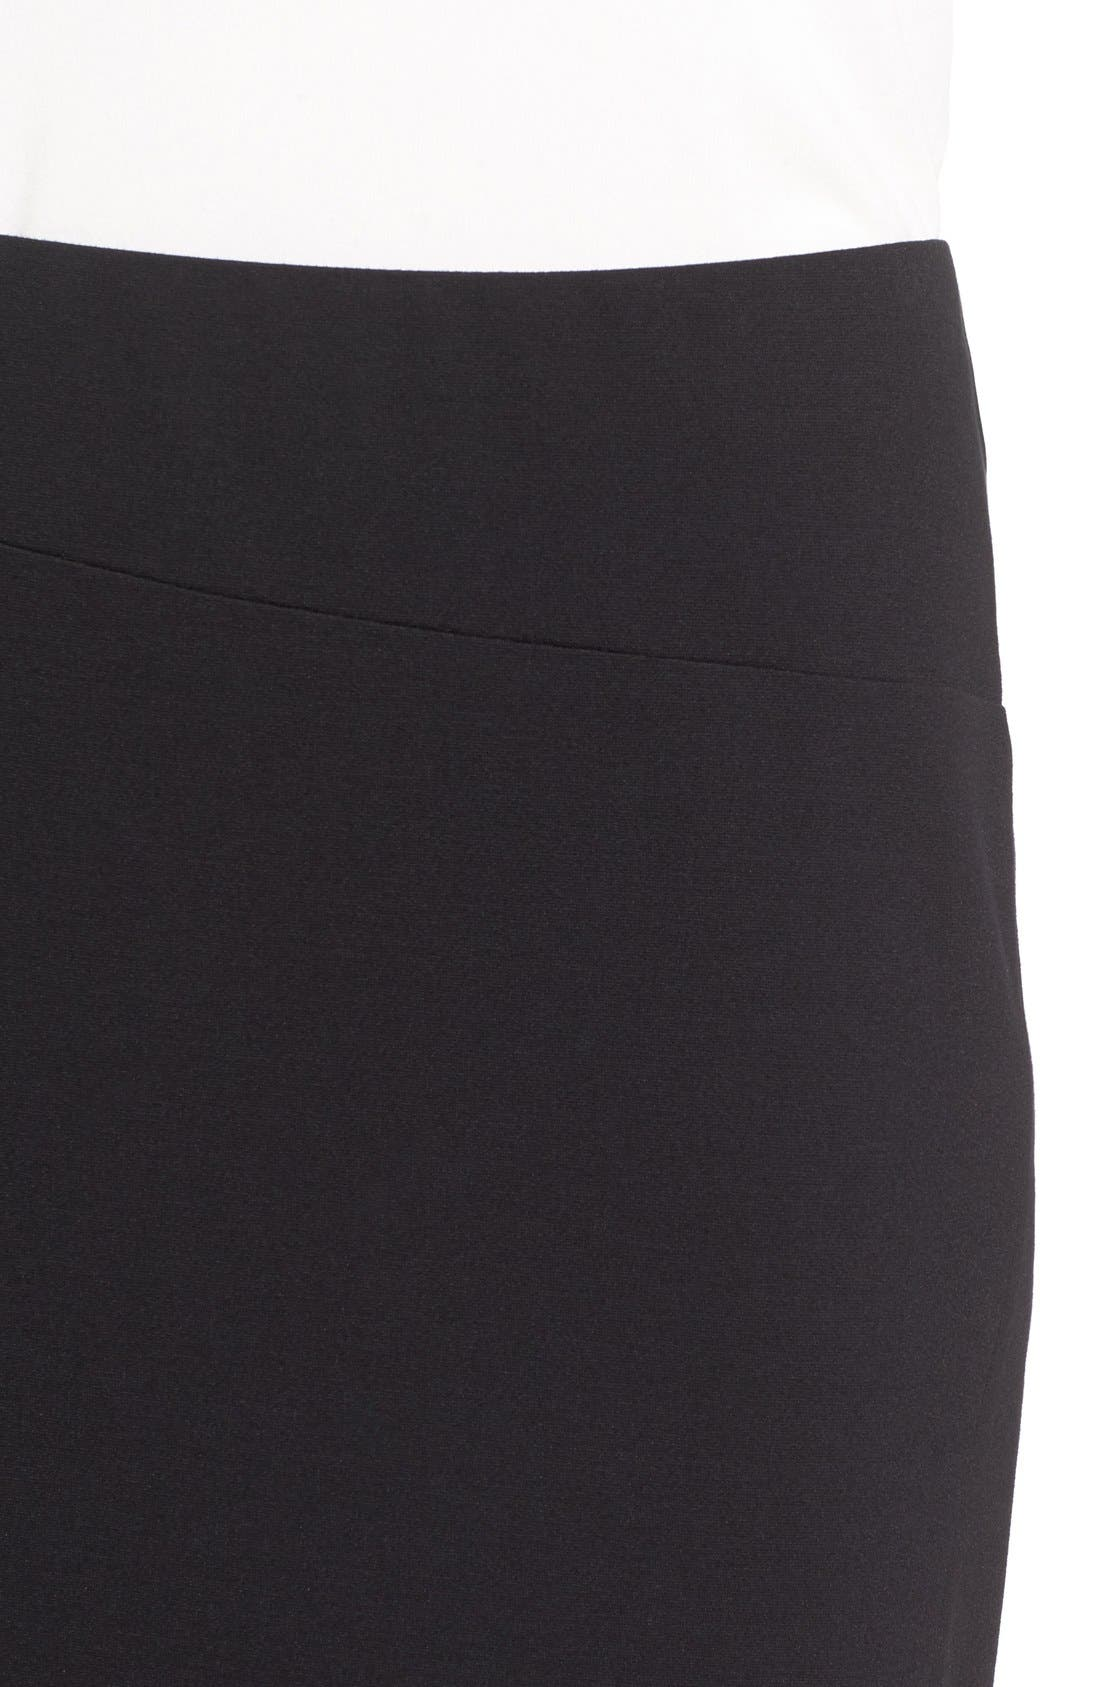 Alternate Image 5  - Vince Camuto Slit Pencil Skirt